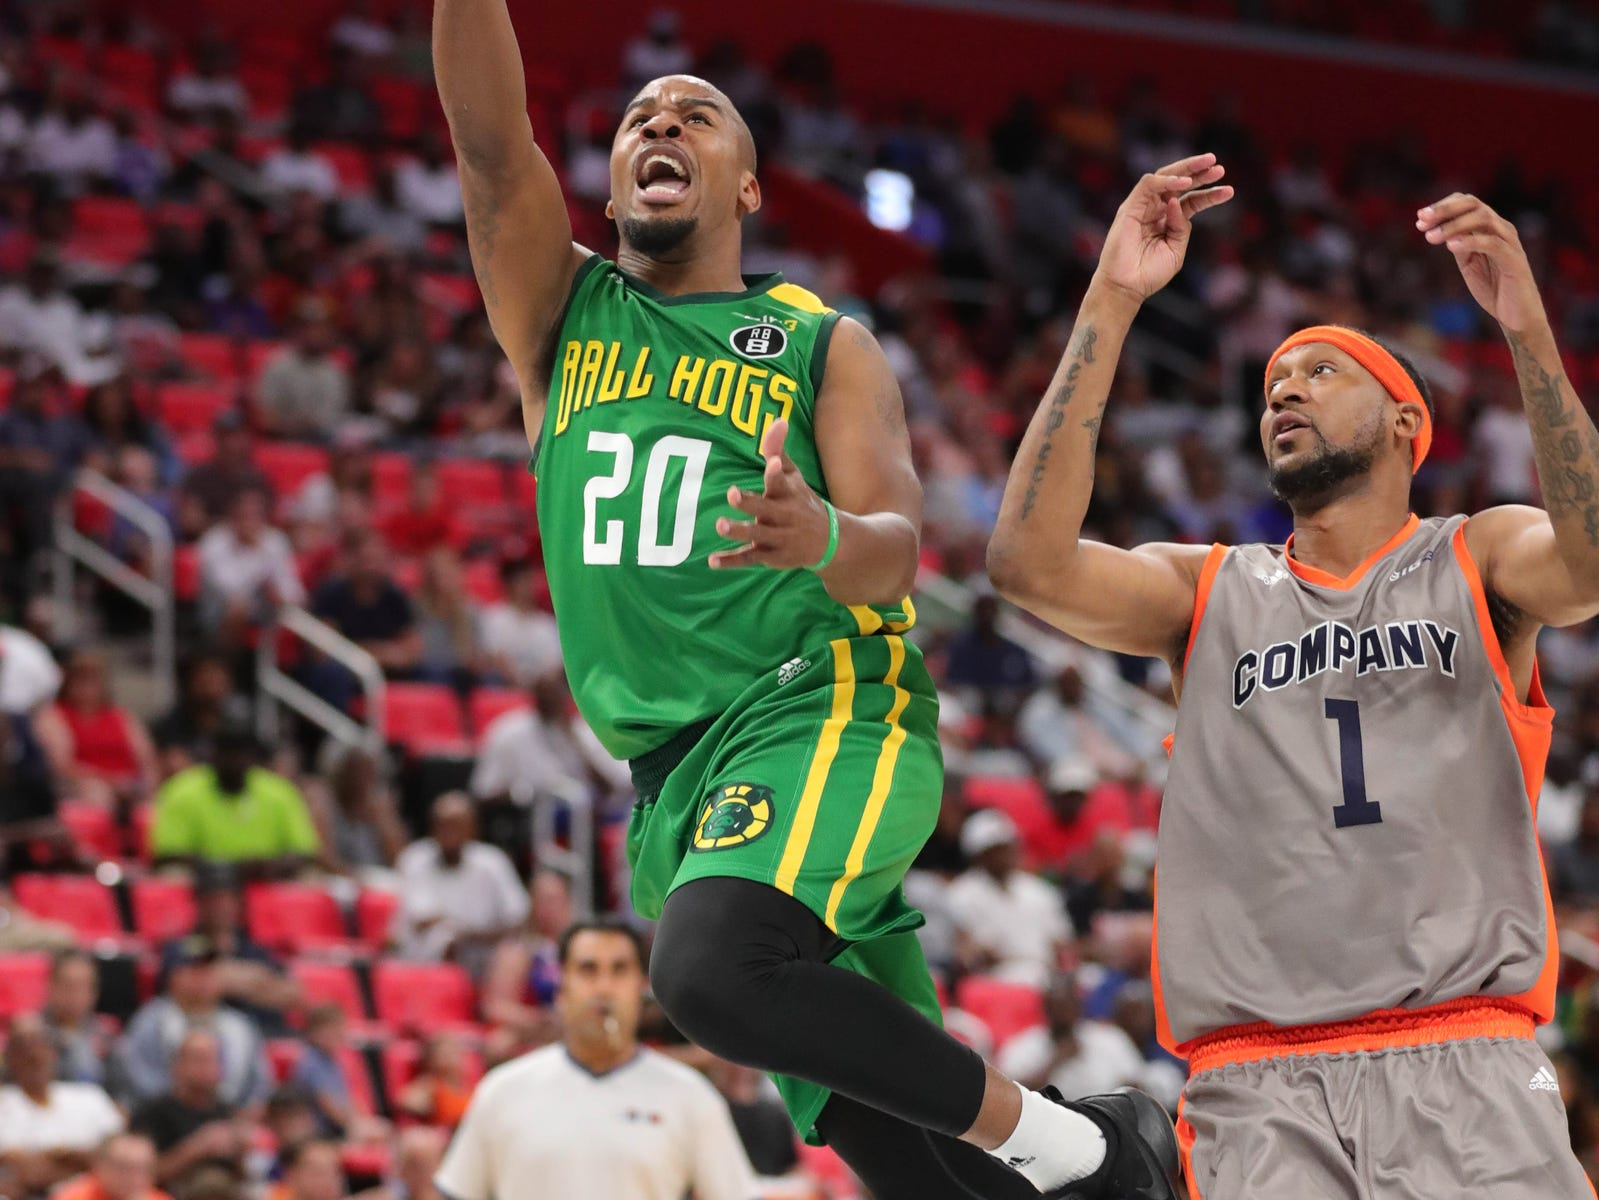 Ball Hogs Andre owens scores against 3s Company's DeMarr Johnson during BIG3 action on Friday, July 13, 2018 at Little Caesars Arena in Detroit.